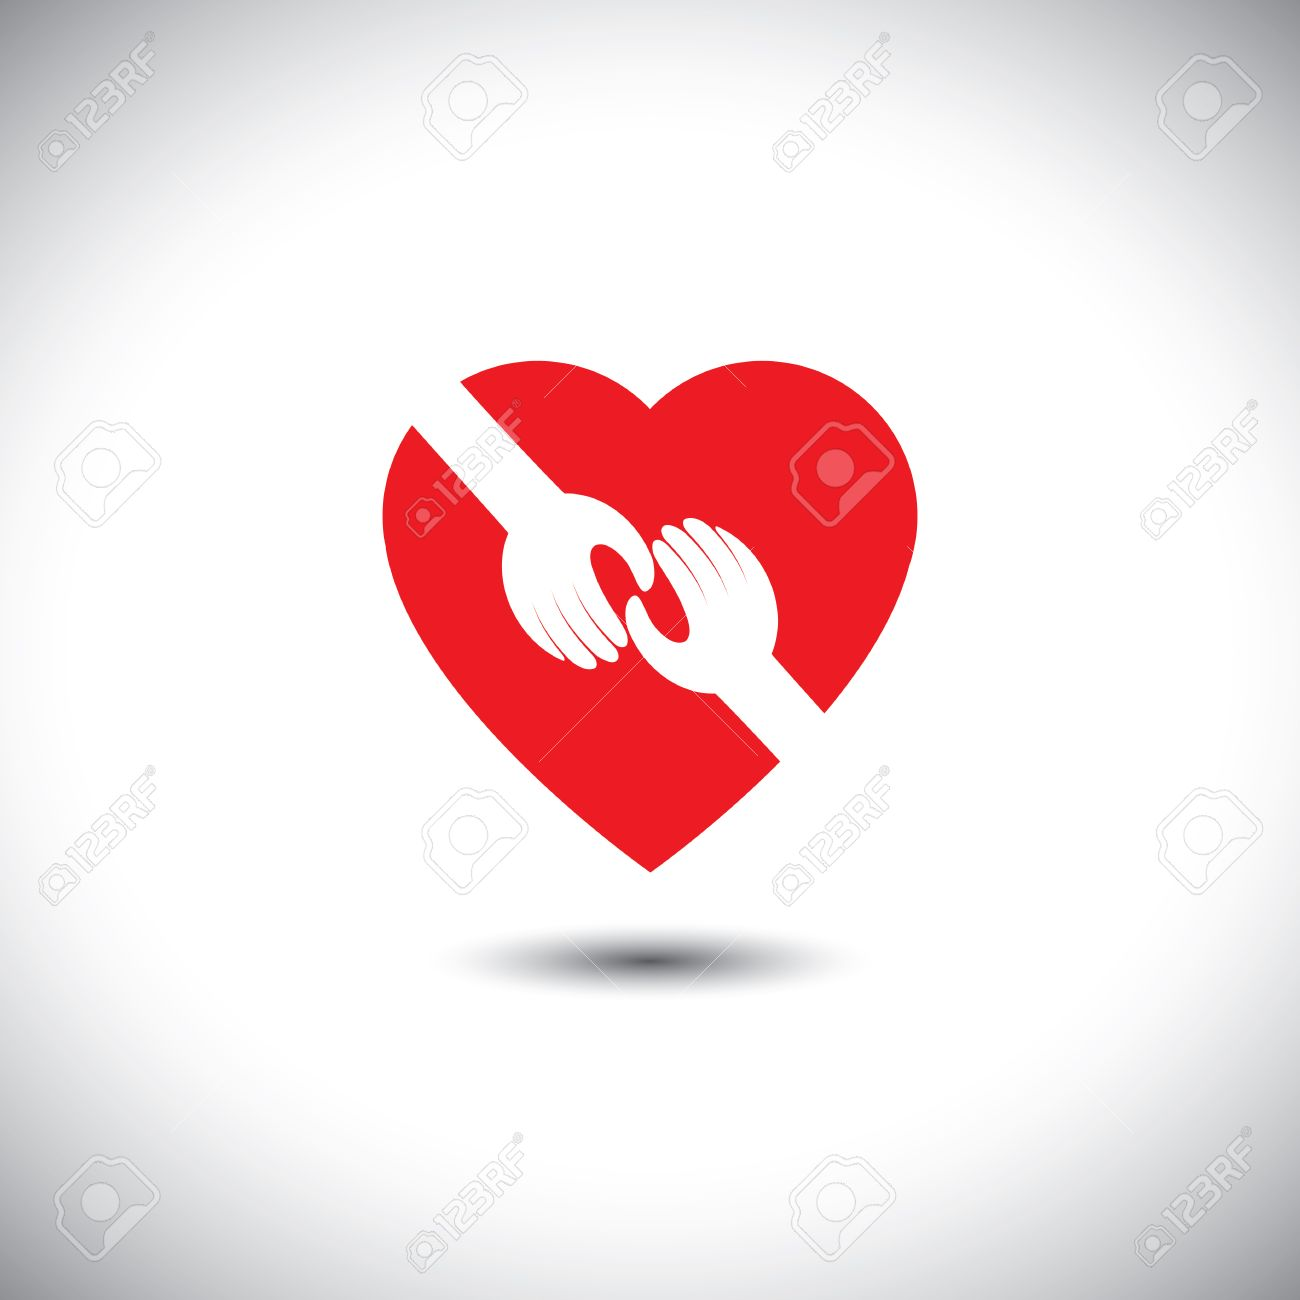 Vector Icon Of Two Hands Touching With Heart Concept Of Love